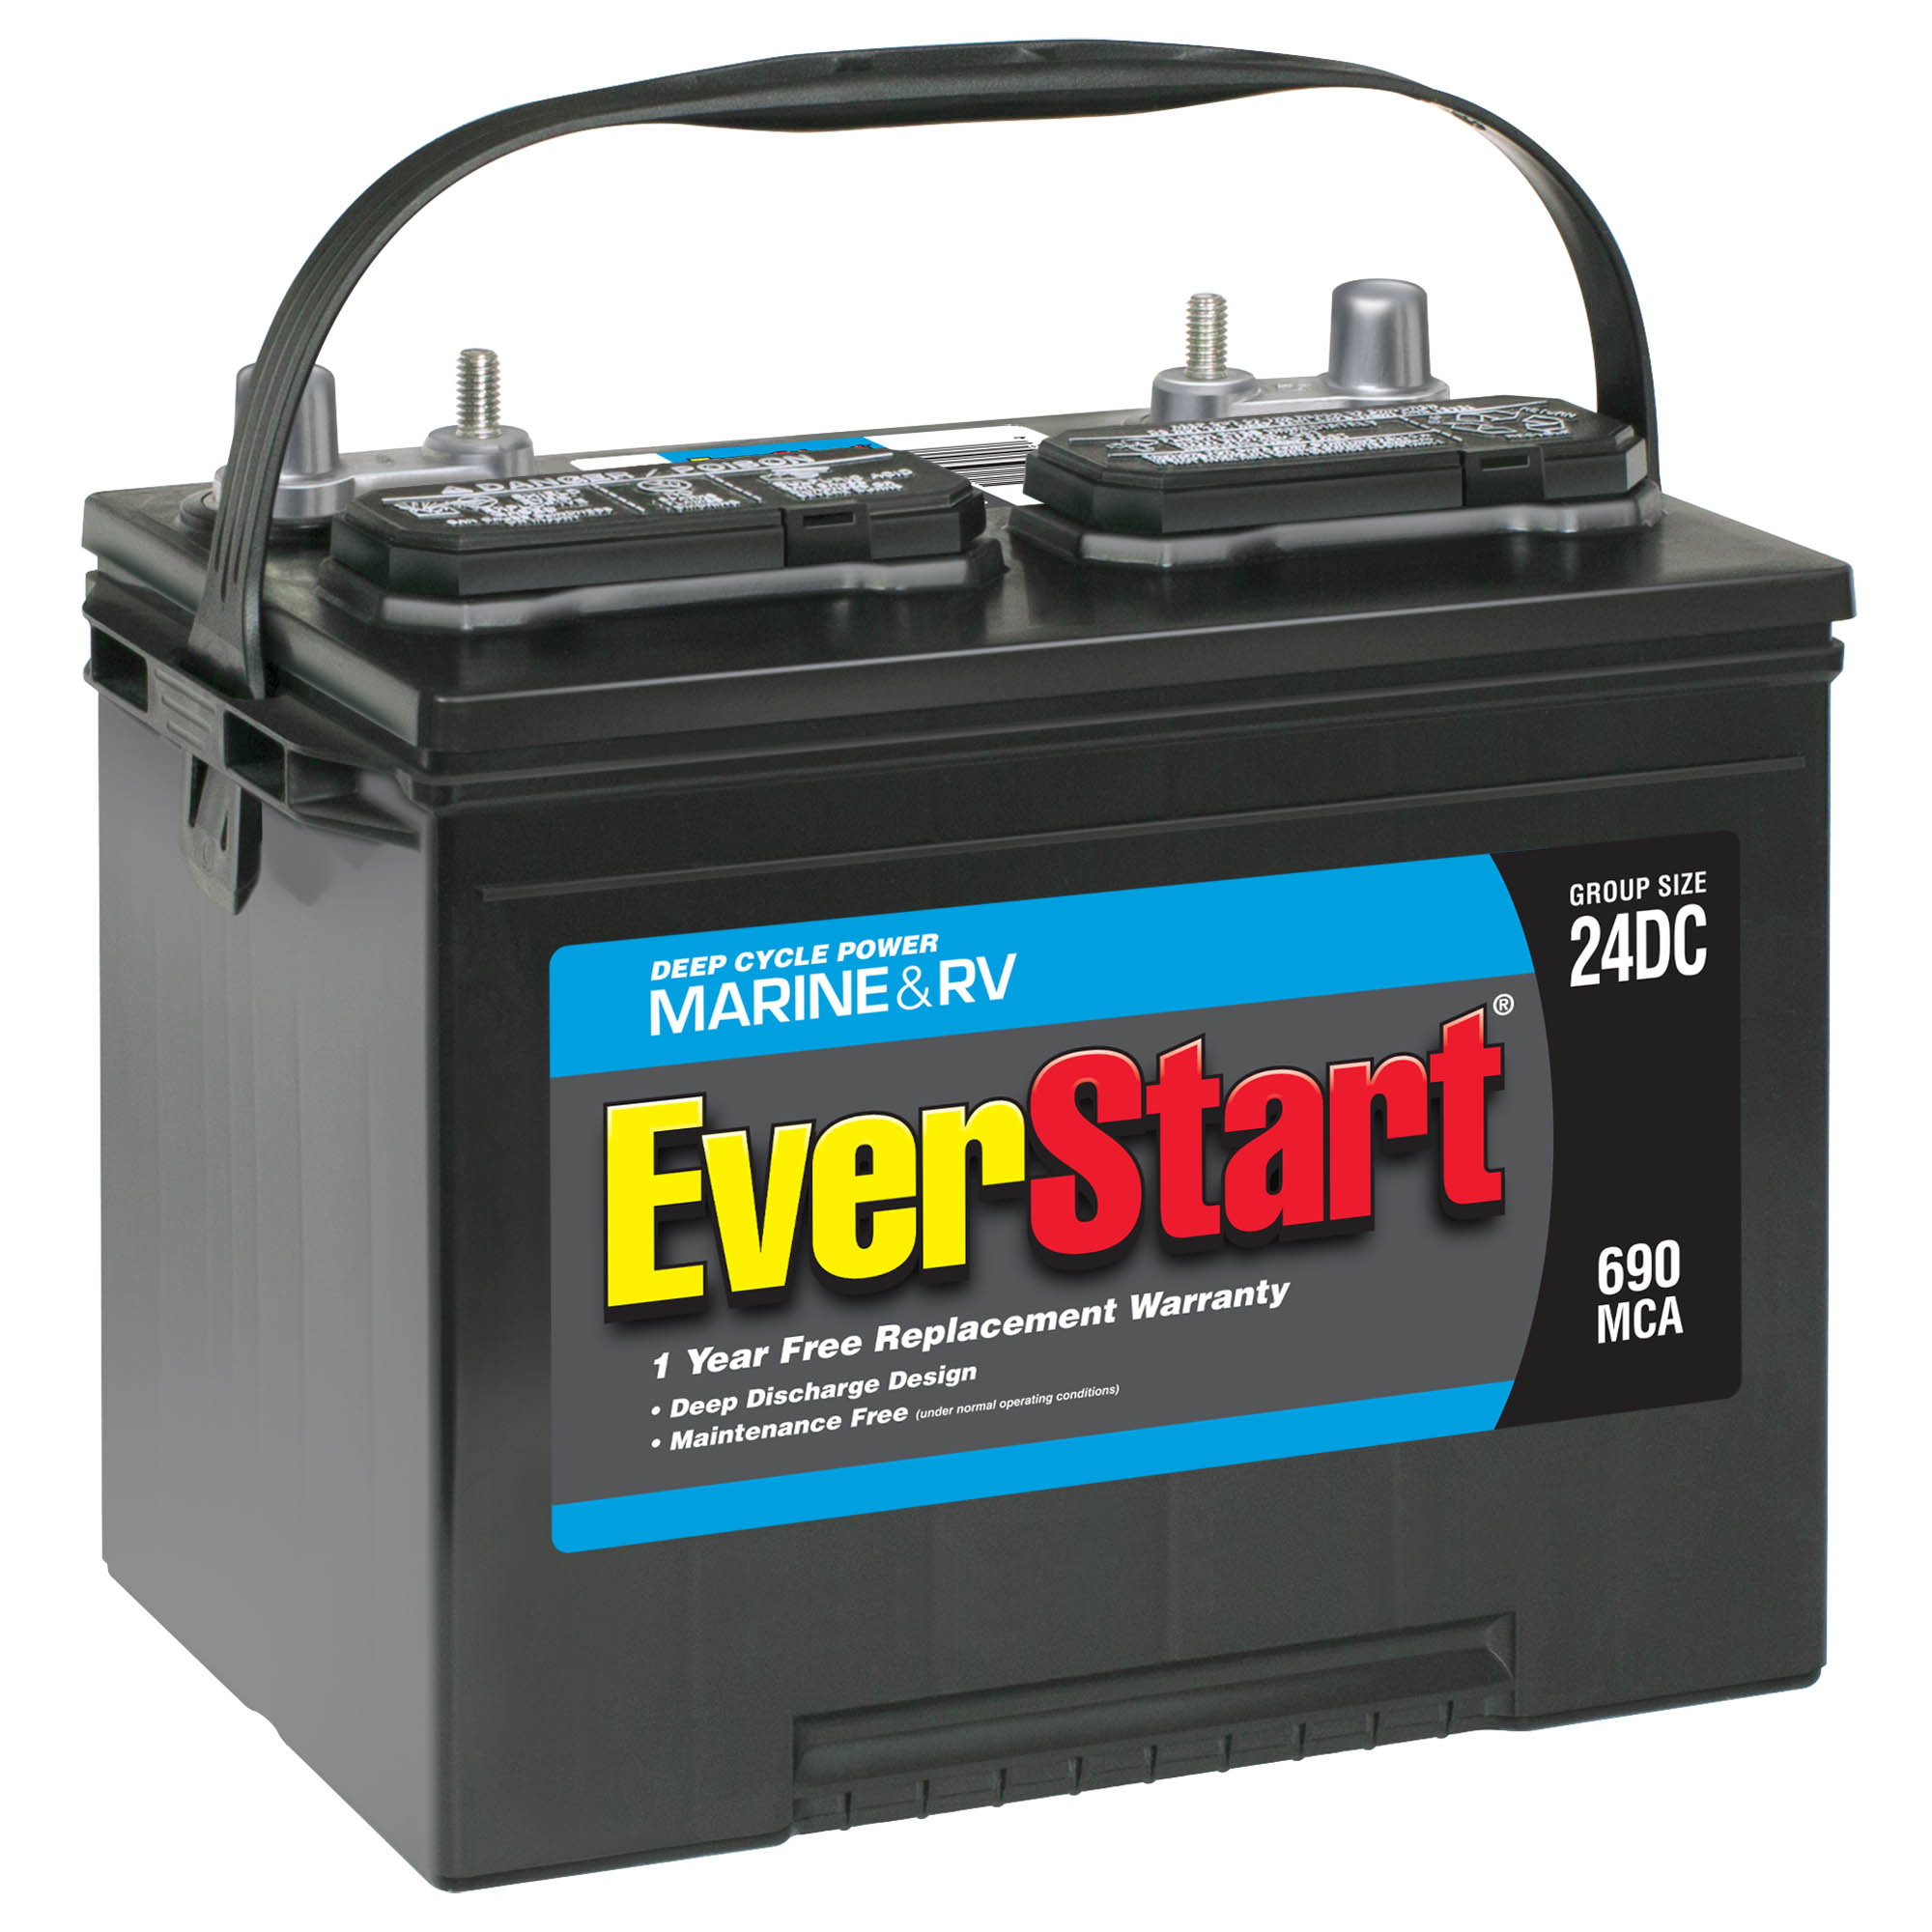 EverStart Lead Acid Marine & RV Deep Cycle Battery, Group Size 24DC (12 Volt/690 MCA)